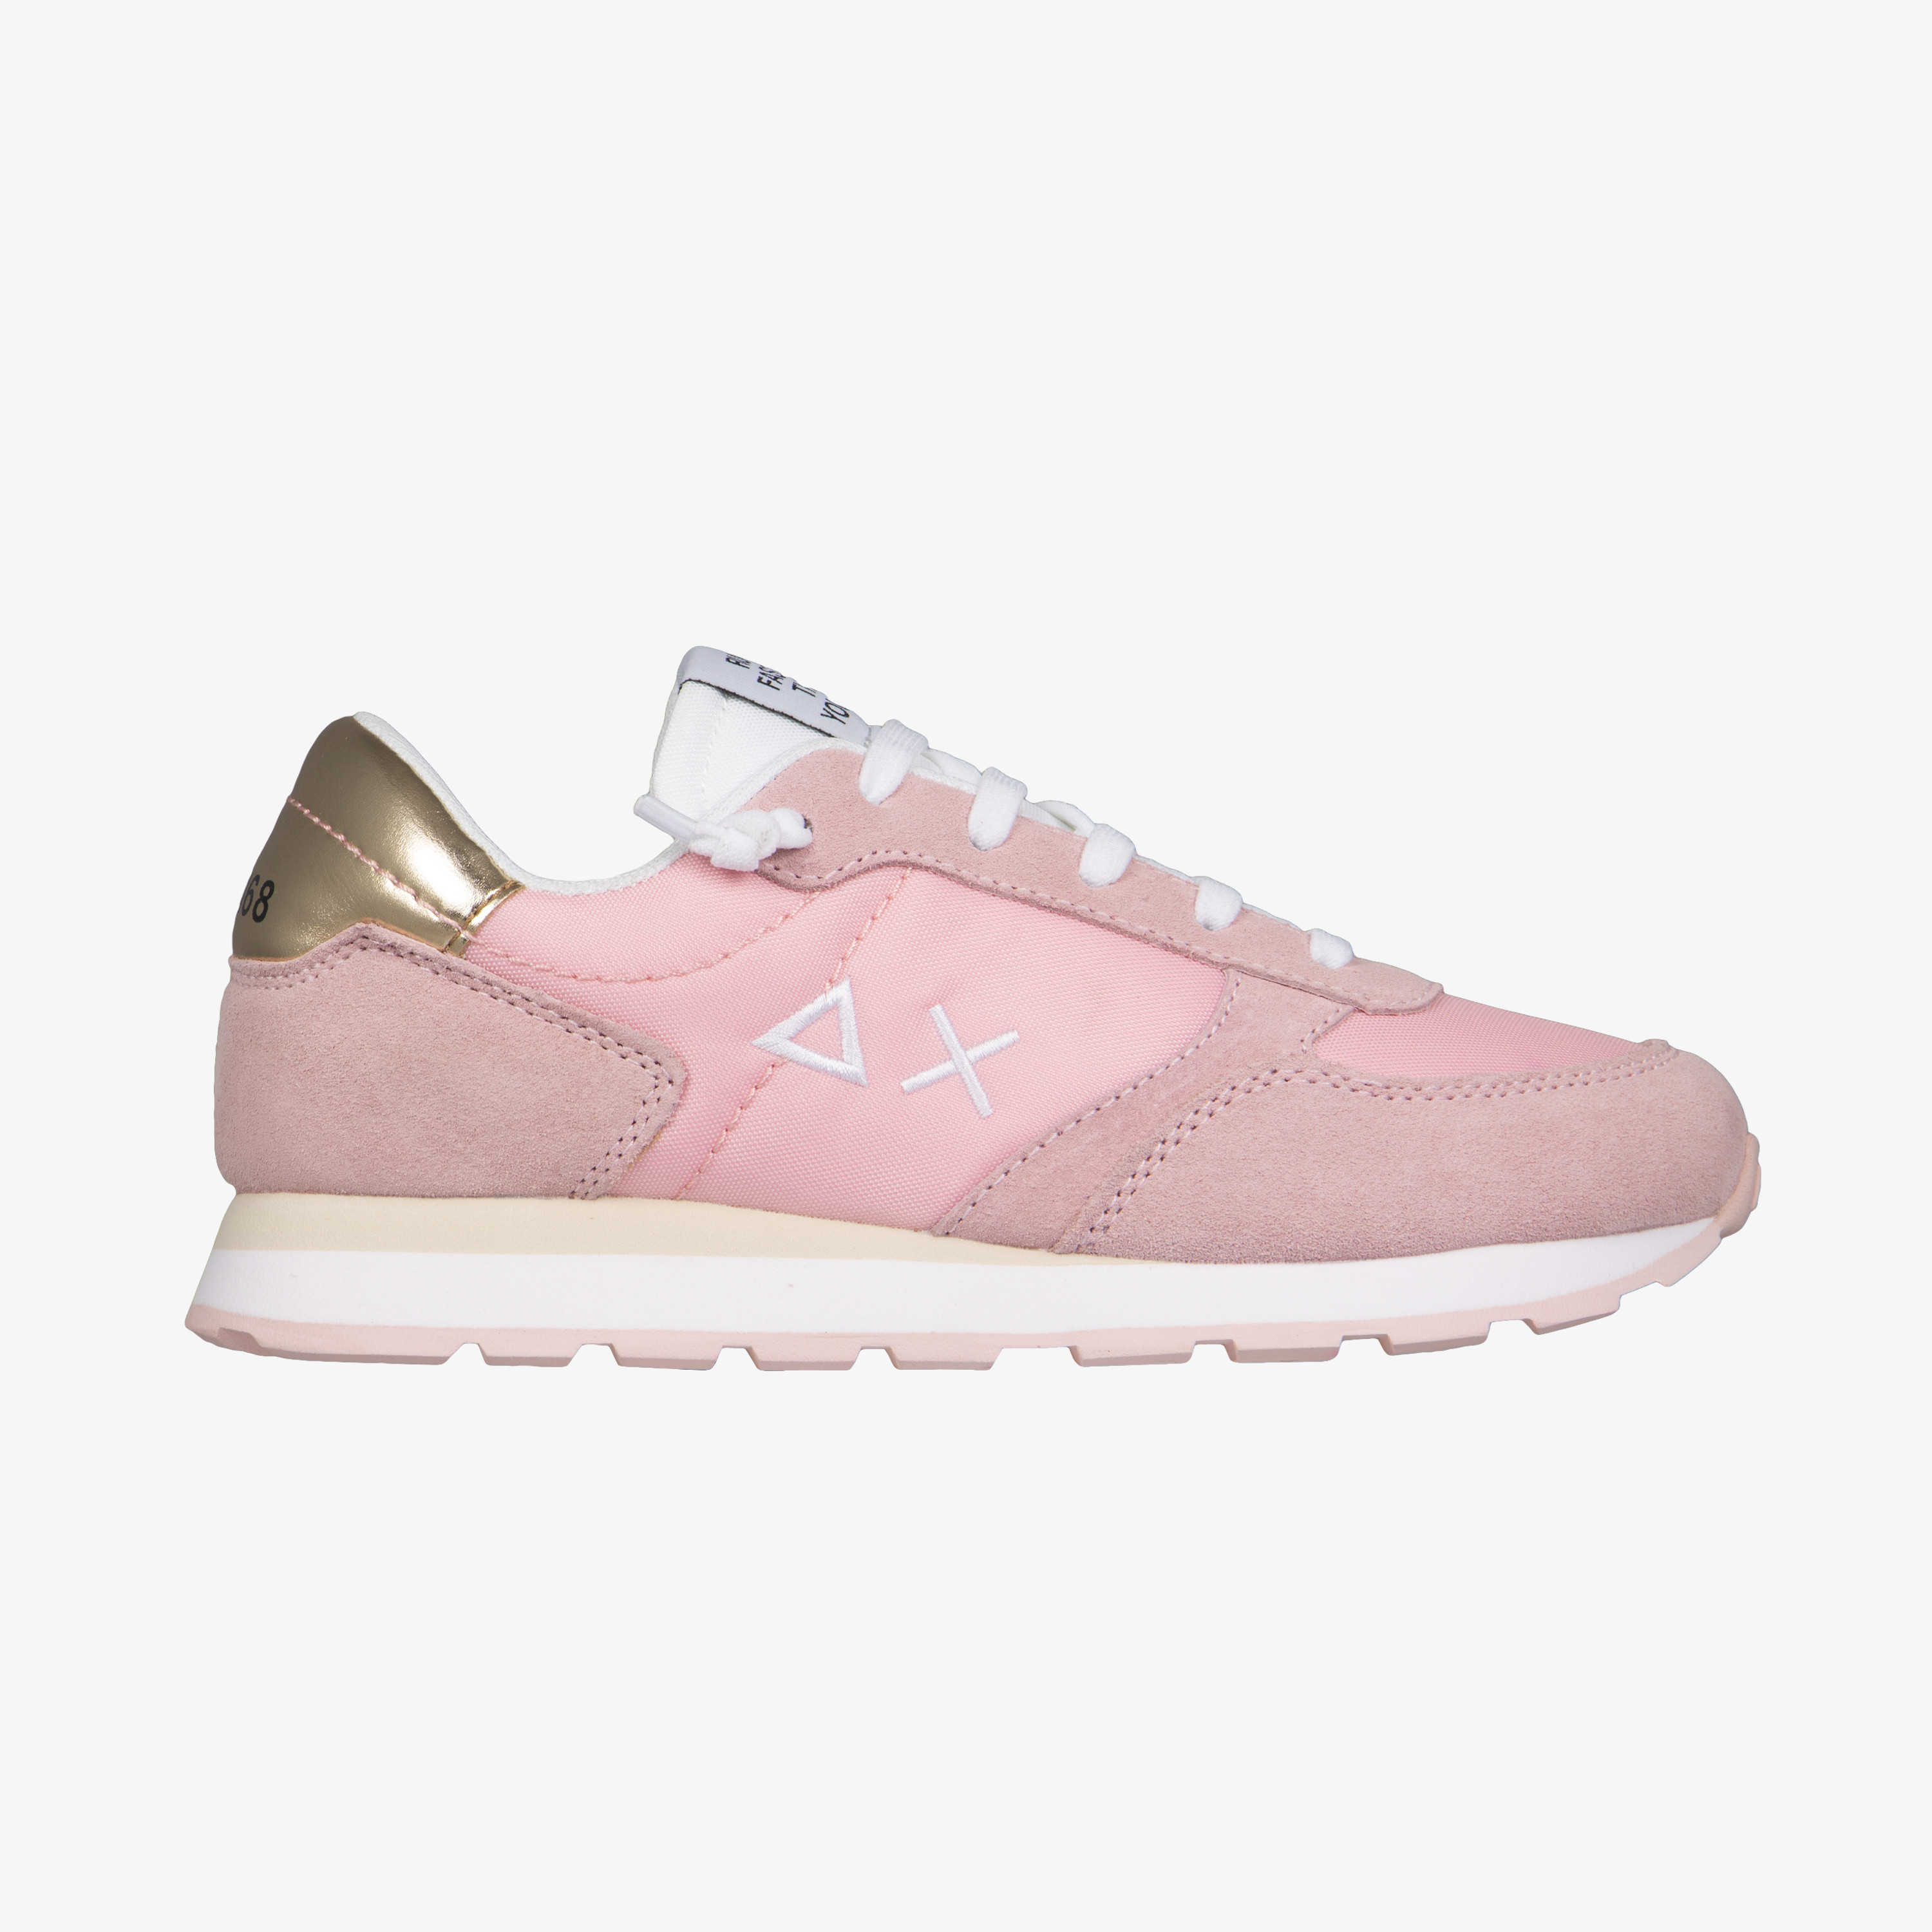 GIRL'S ALLY NYLON SOLID PINK